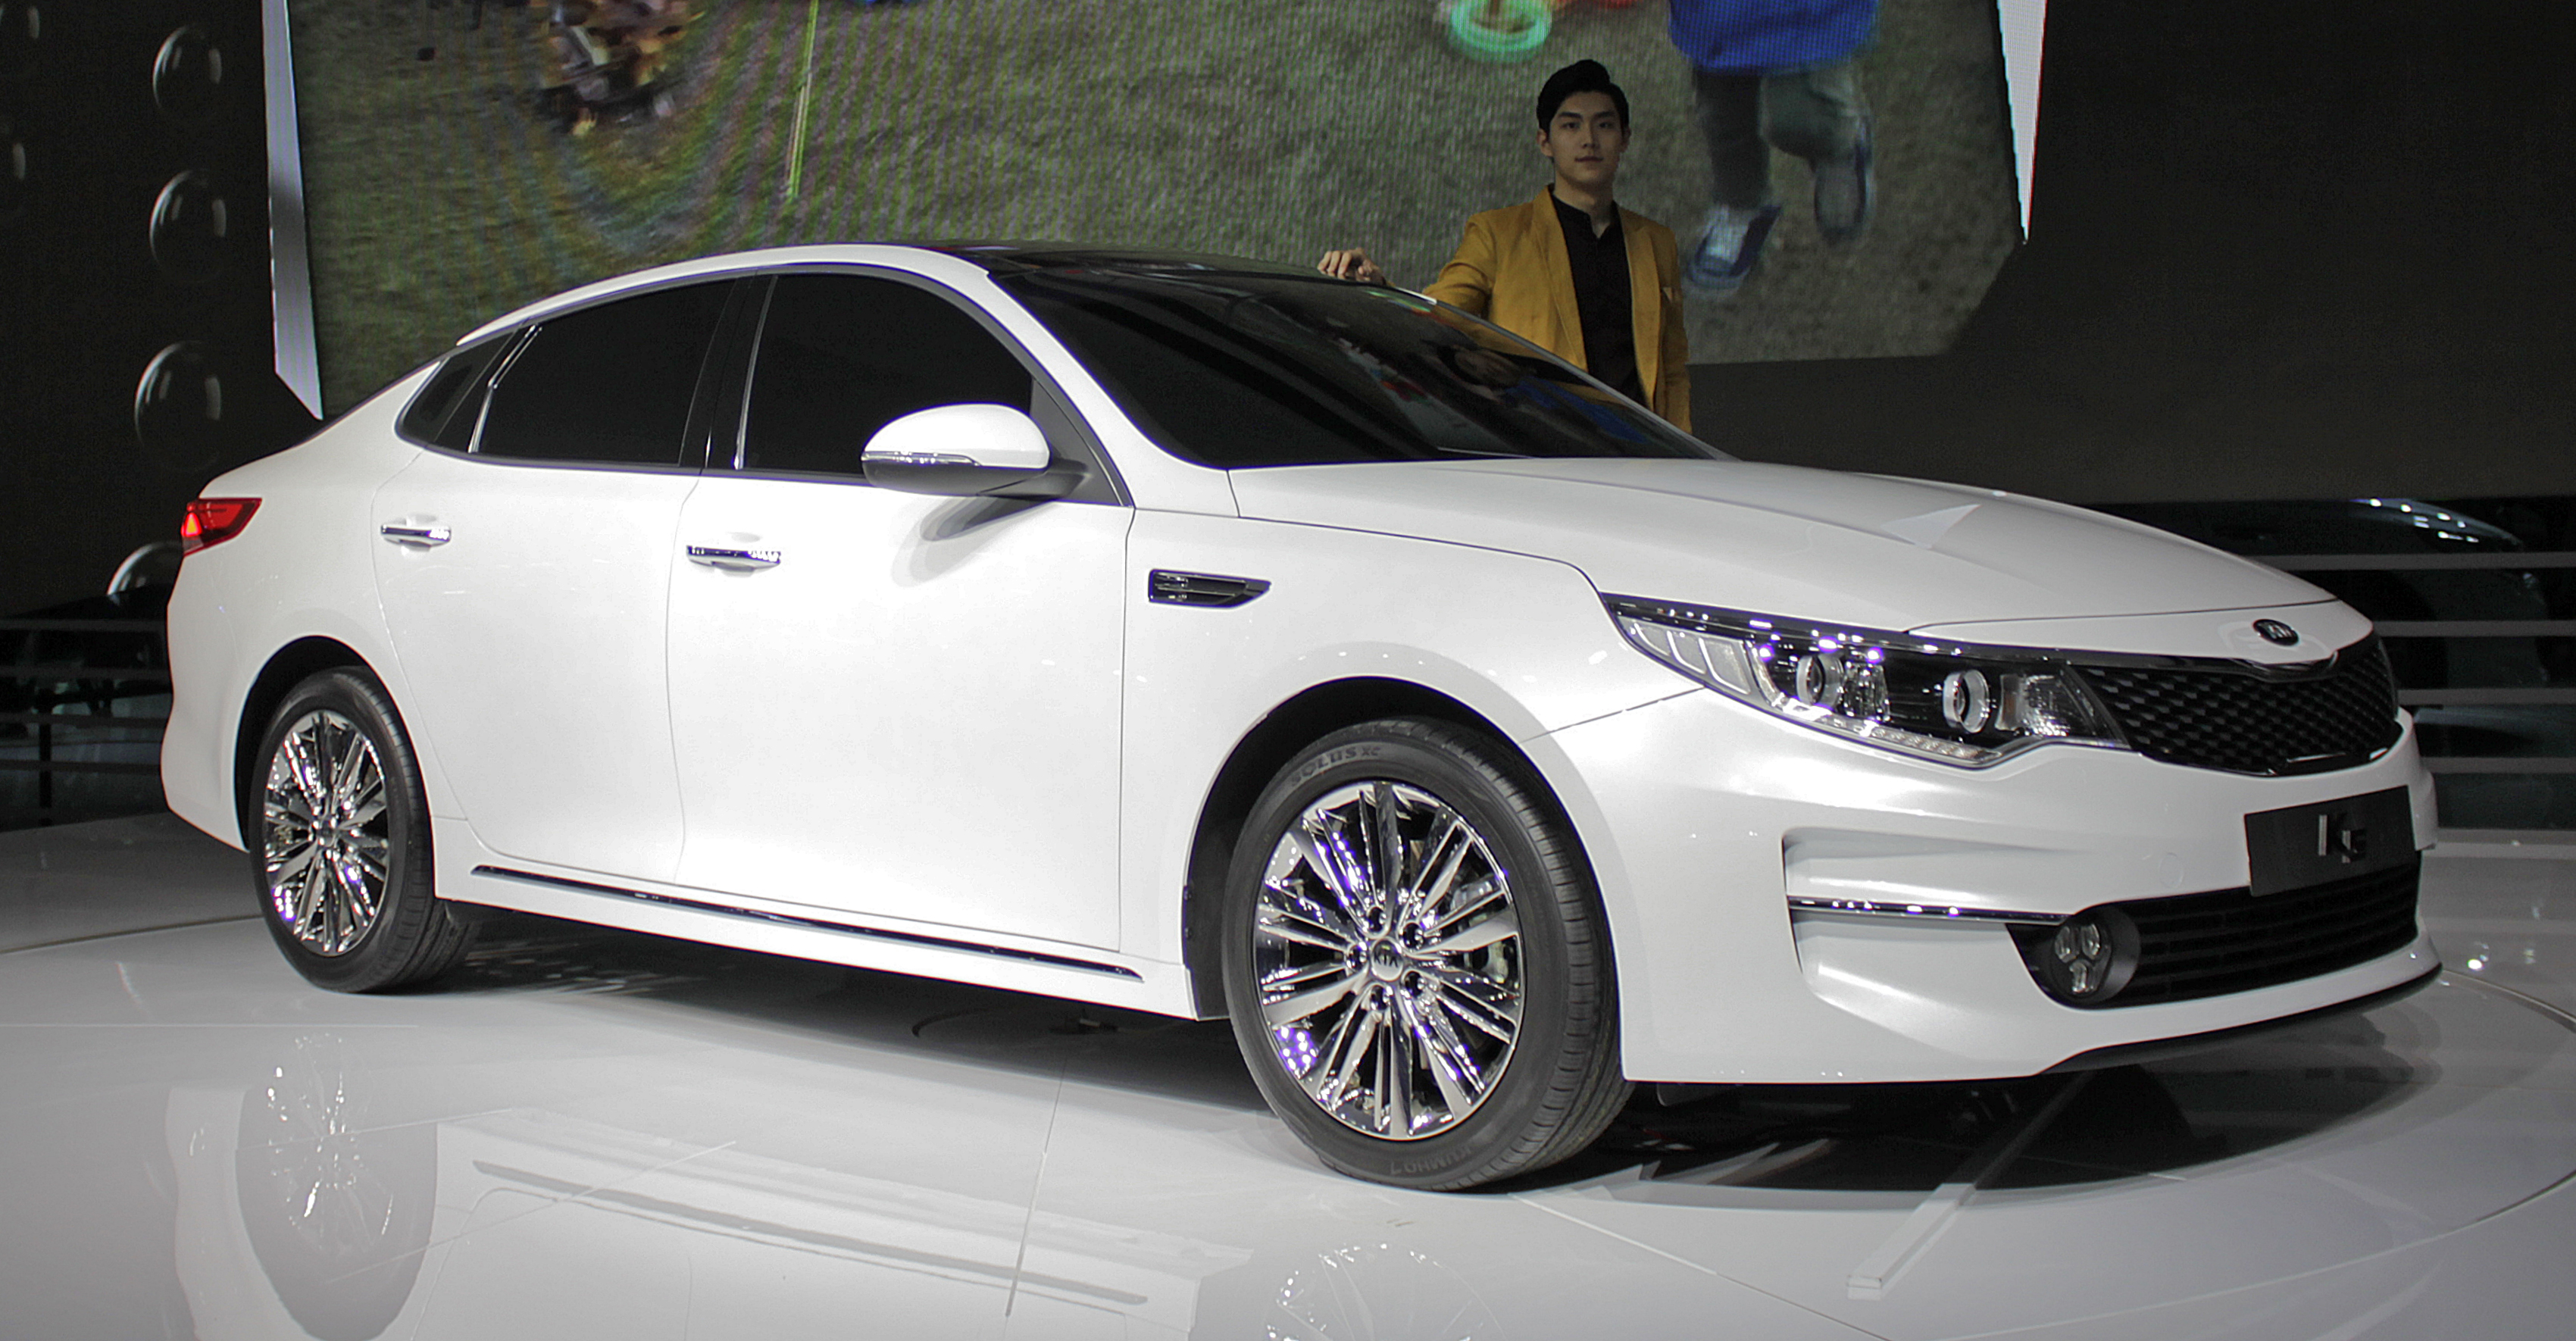 hybrid optima kia keen it lx peachy s